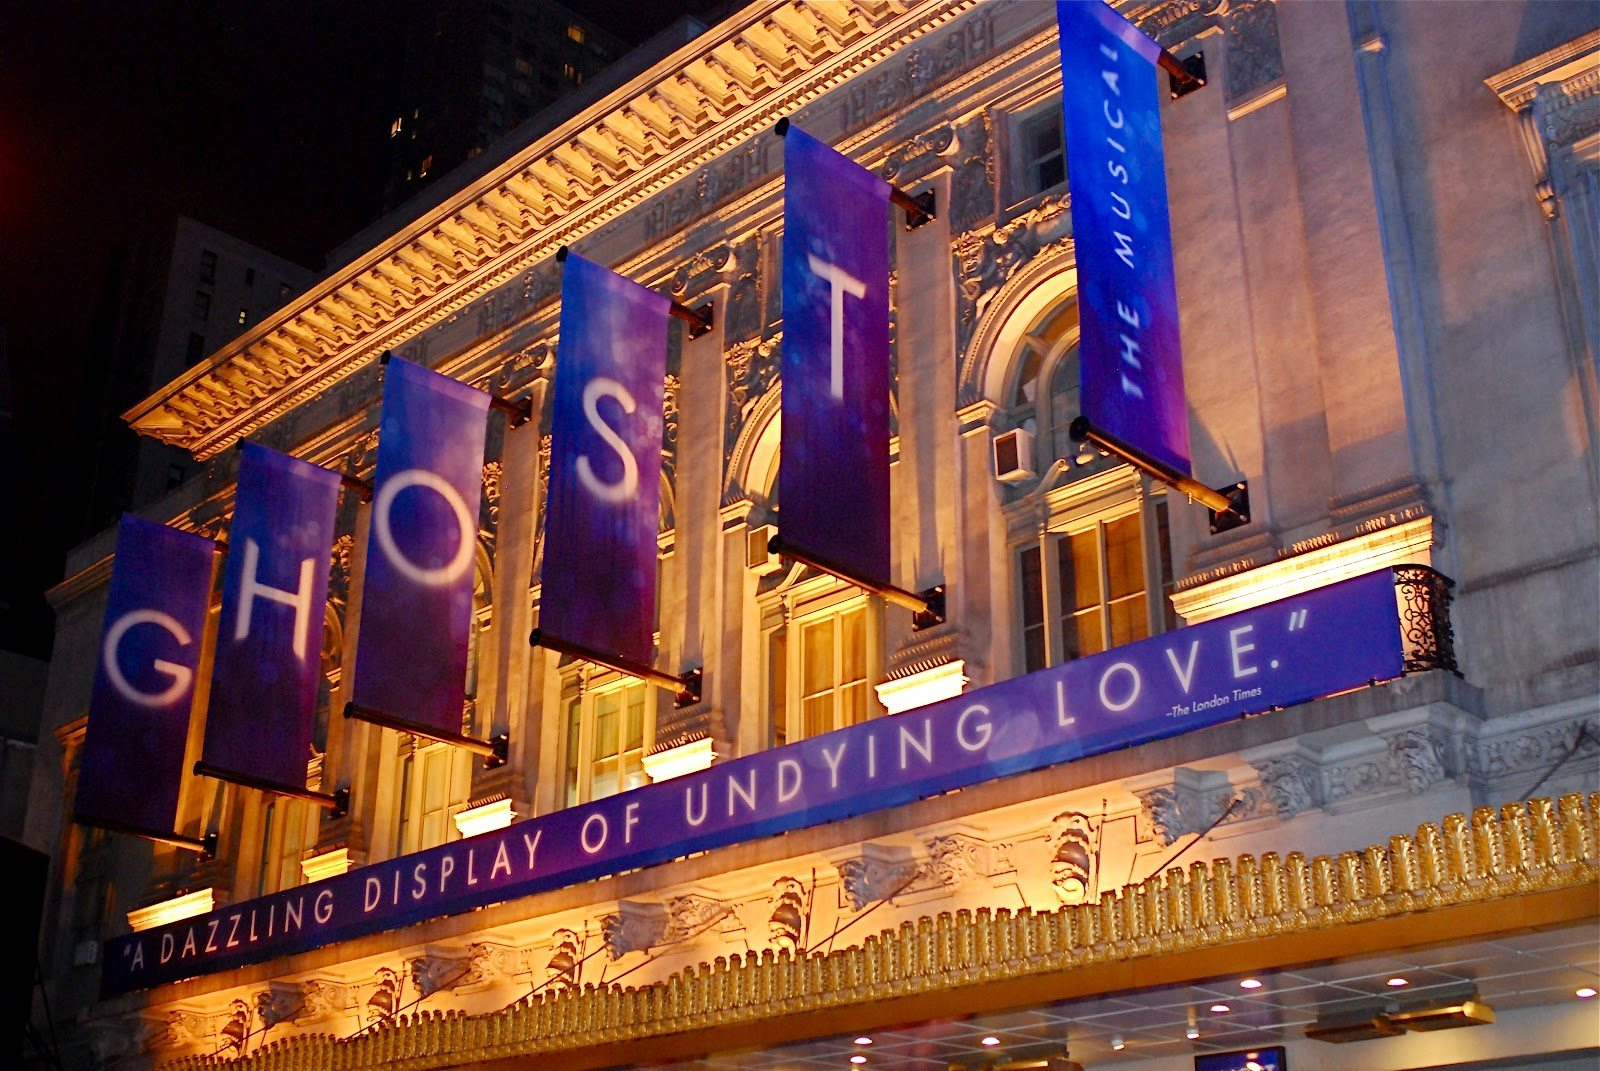 Dave Stewart's Ghost The Musical Will Offer Free Lottery Tickets to Final Broadway Performance In 4 Days Time